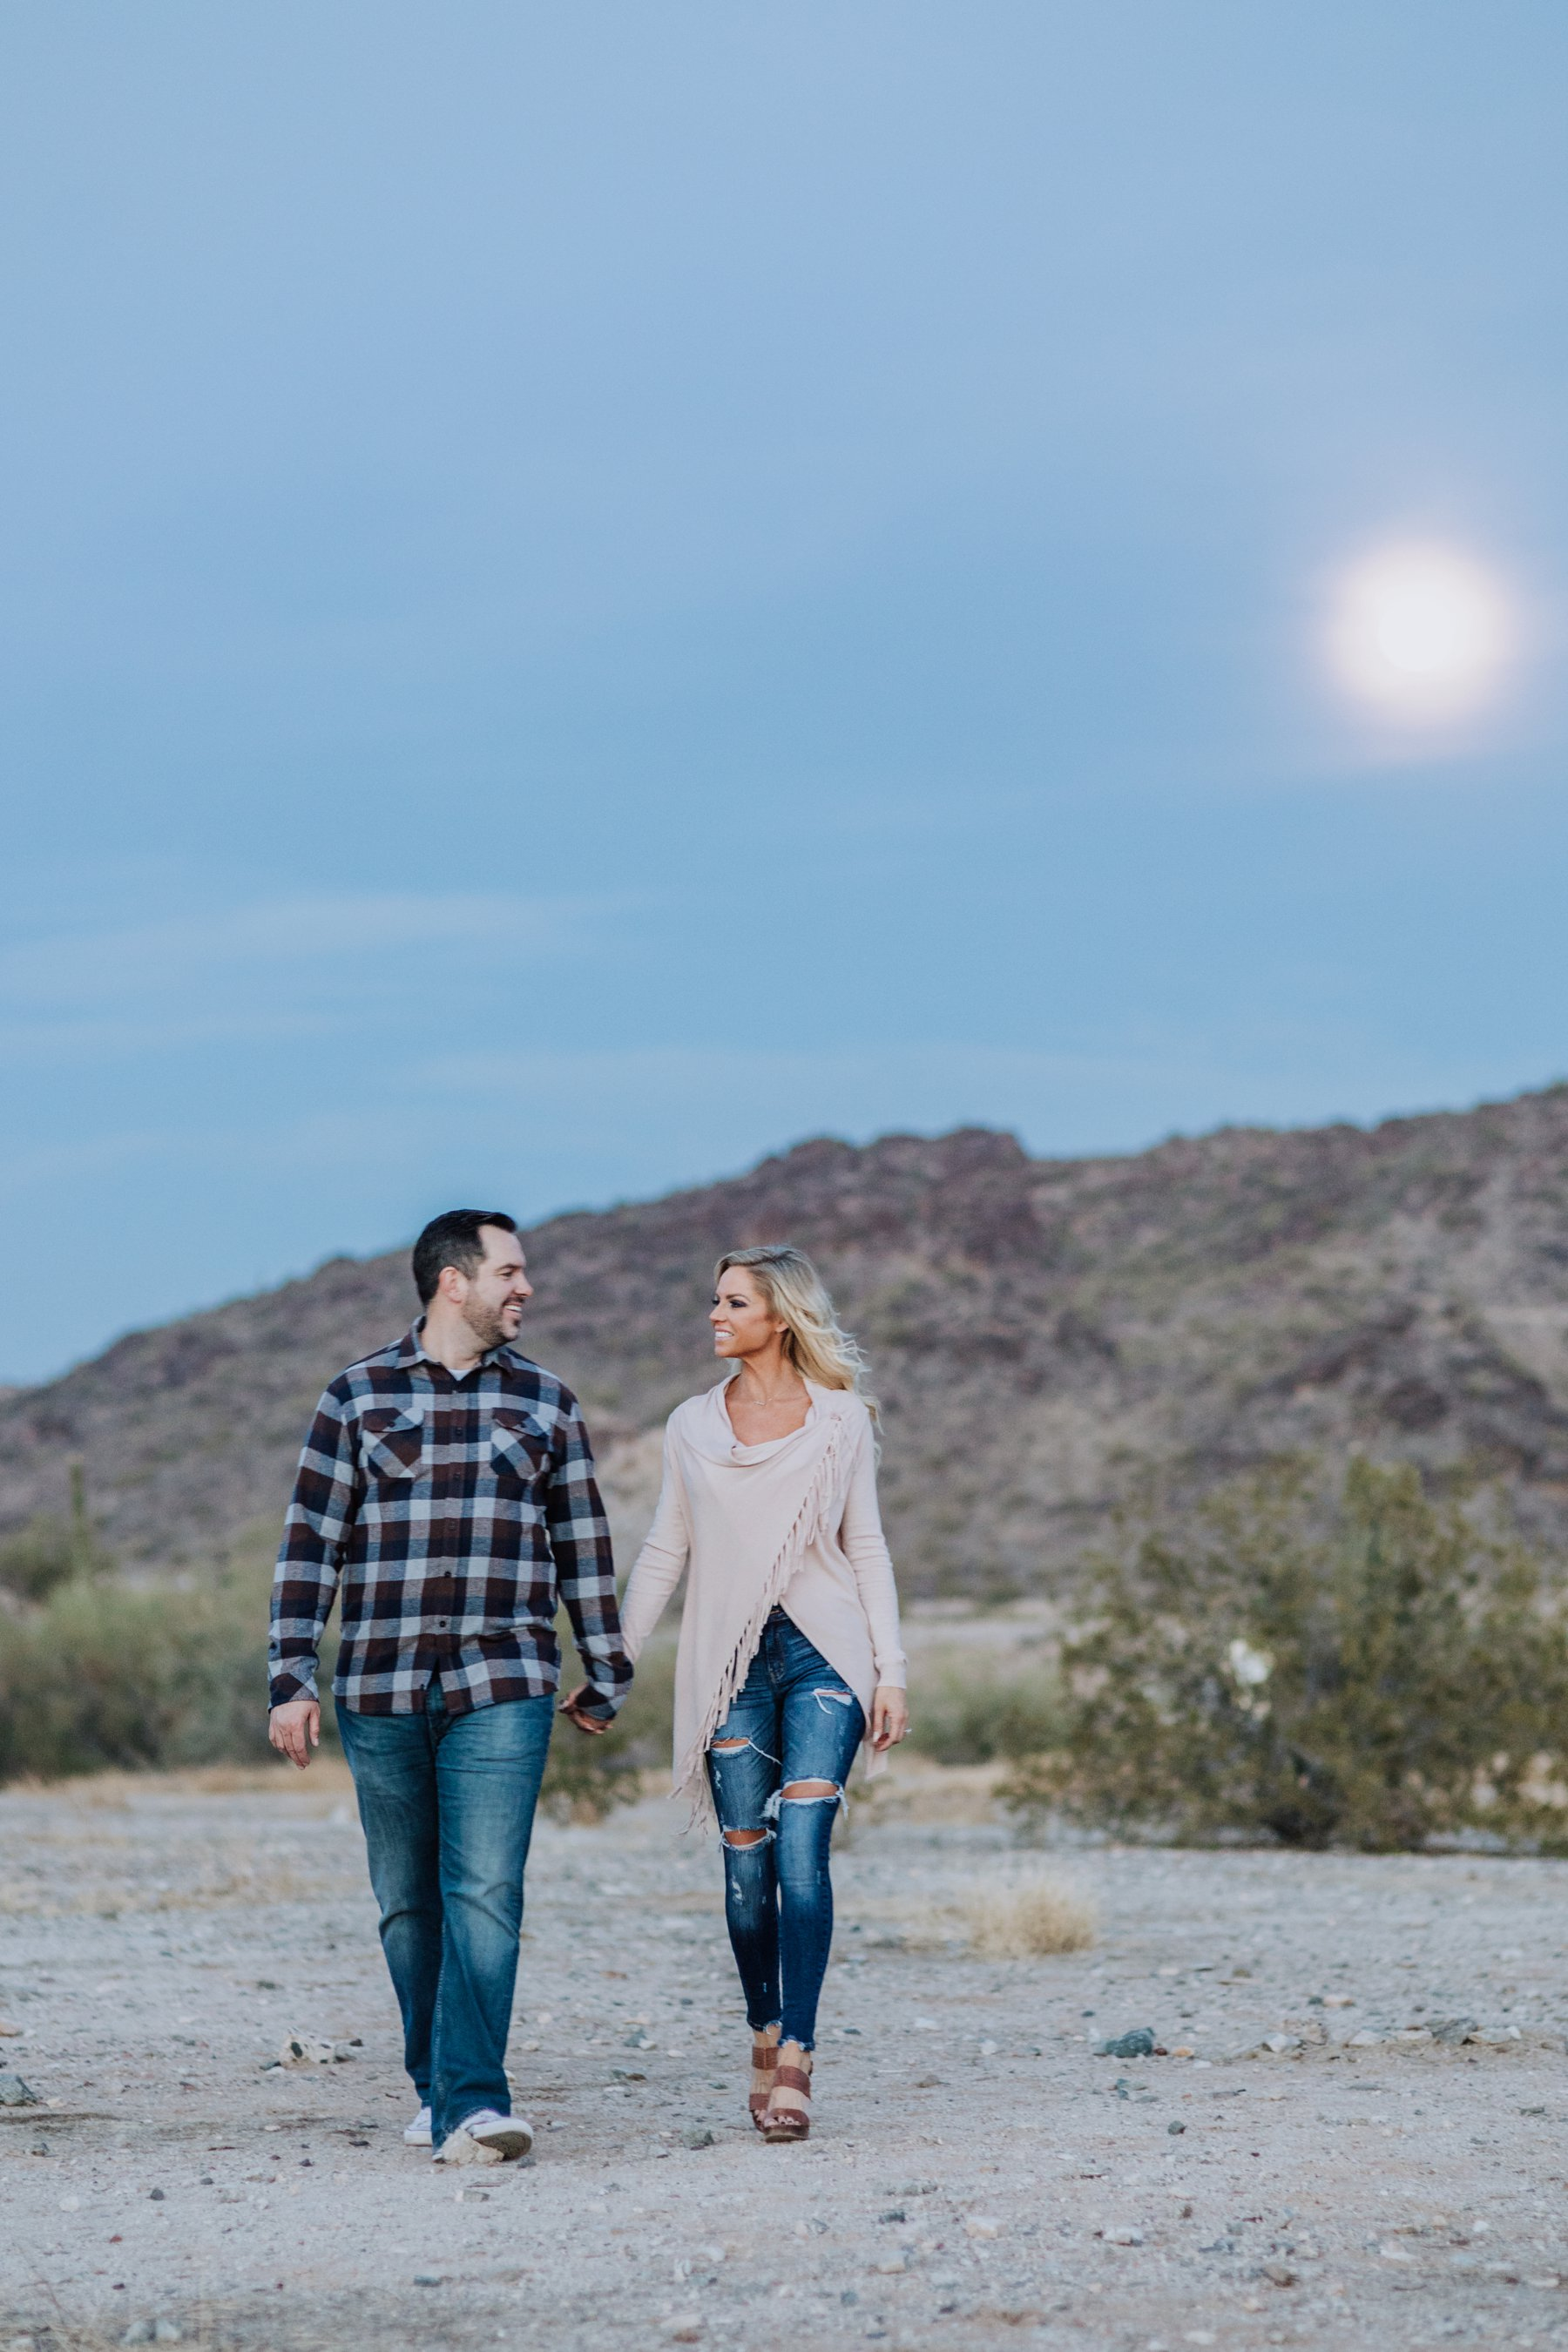 Phoenix Arizona Scorpion Gulch desert engagement session, Melayne + Drew by Diana Elizabeth Photography - www.dianaelizabeth.com // evening with the moon in the desert couple walking